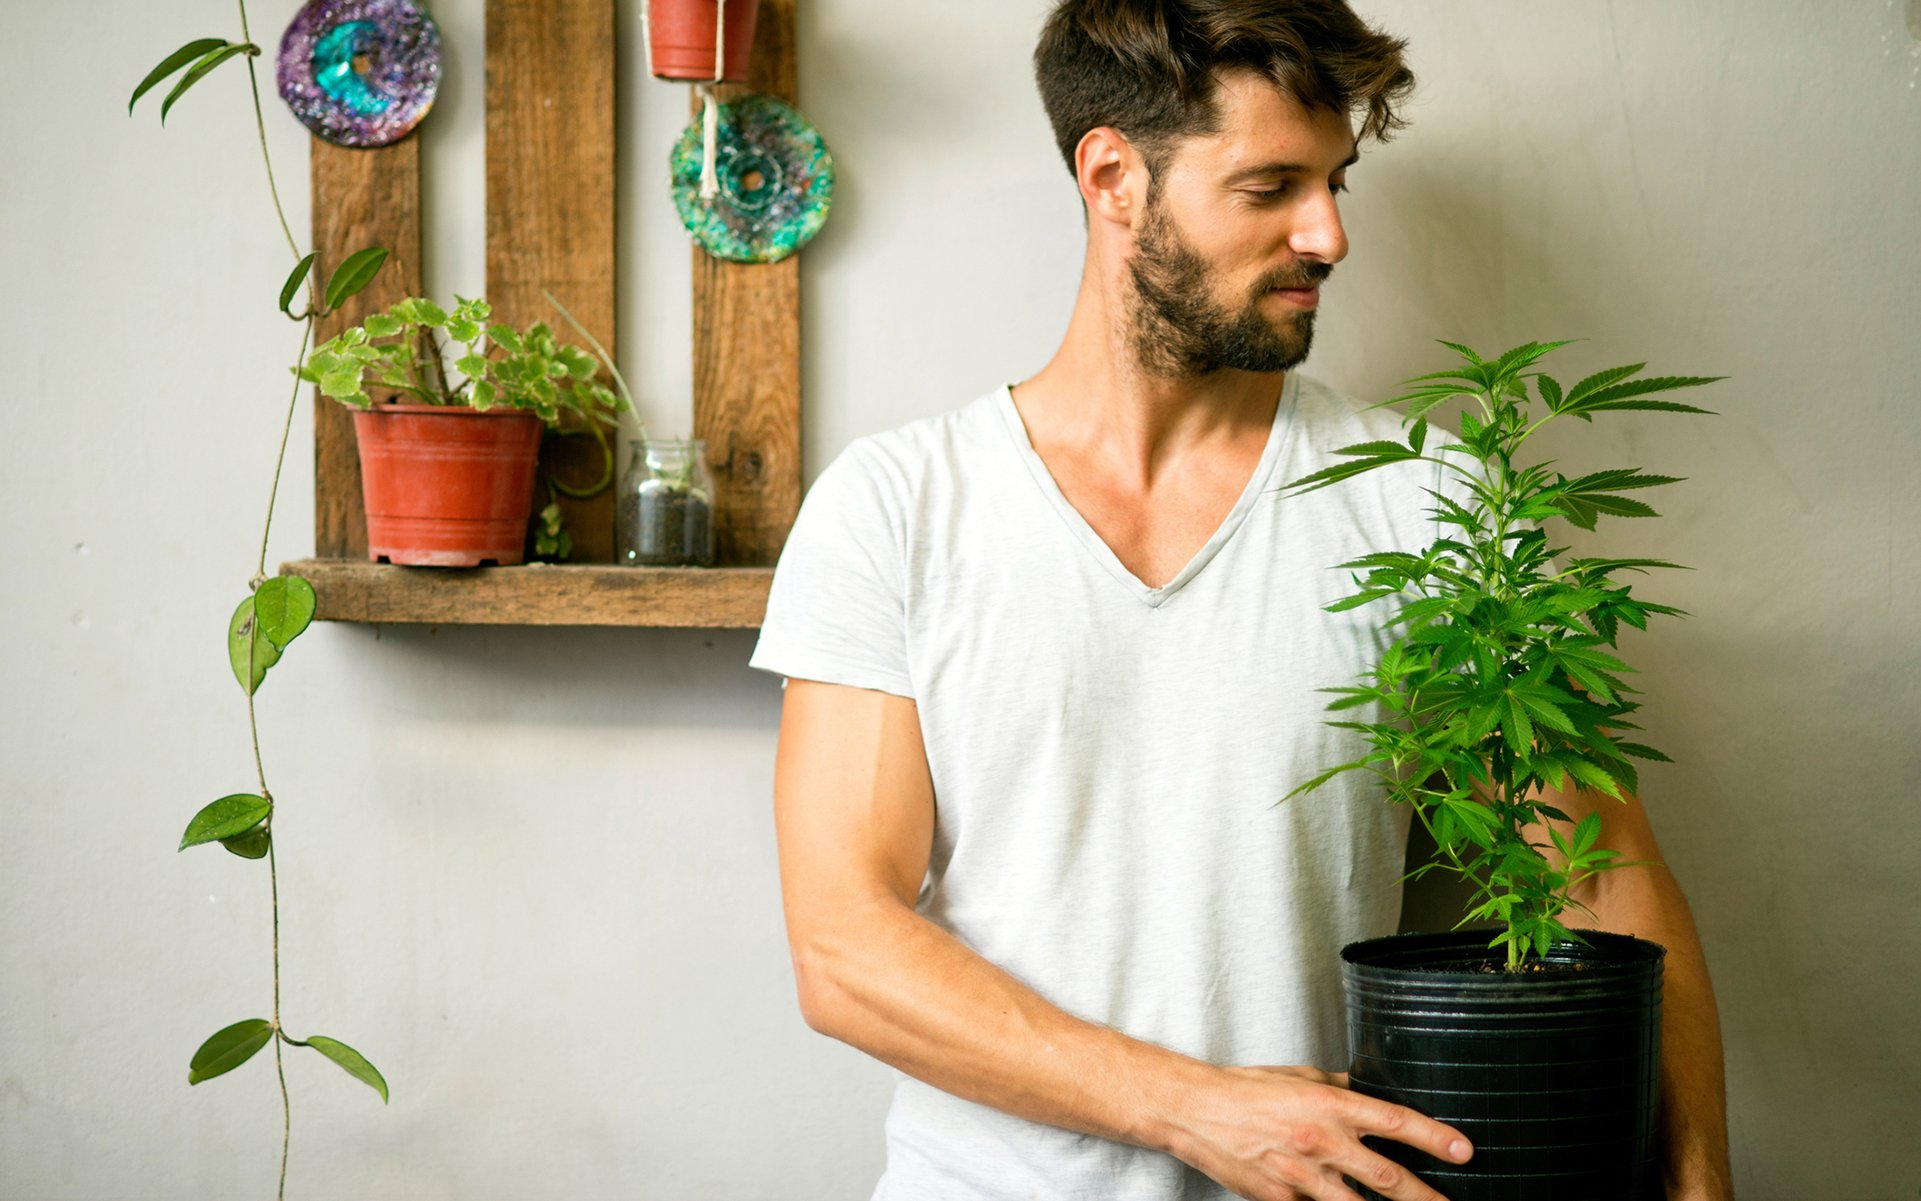 5 Reasons Why You Should Consider Growing Your Own Cannabis | Leafly